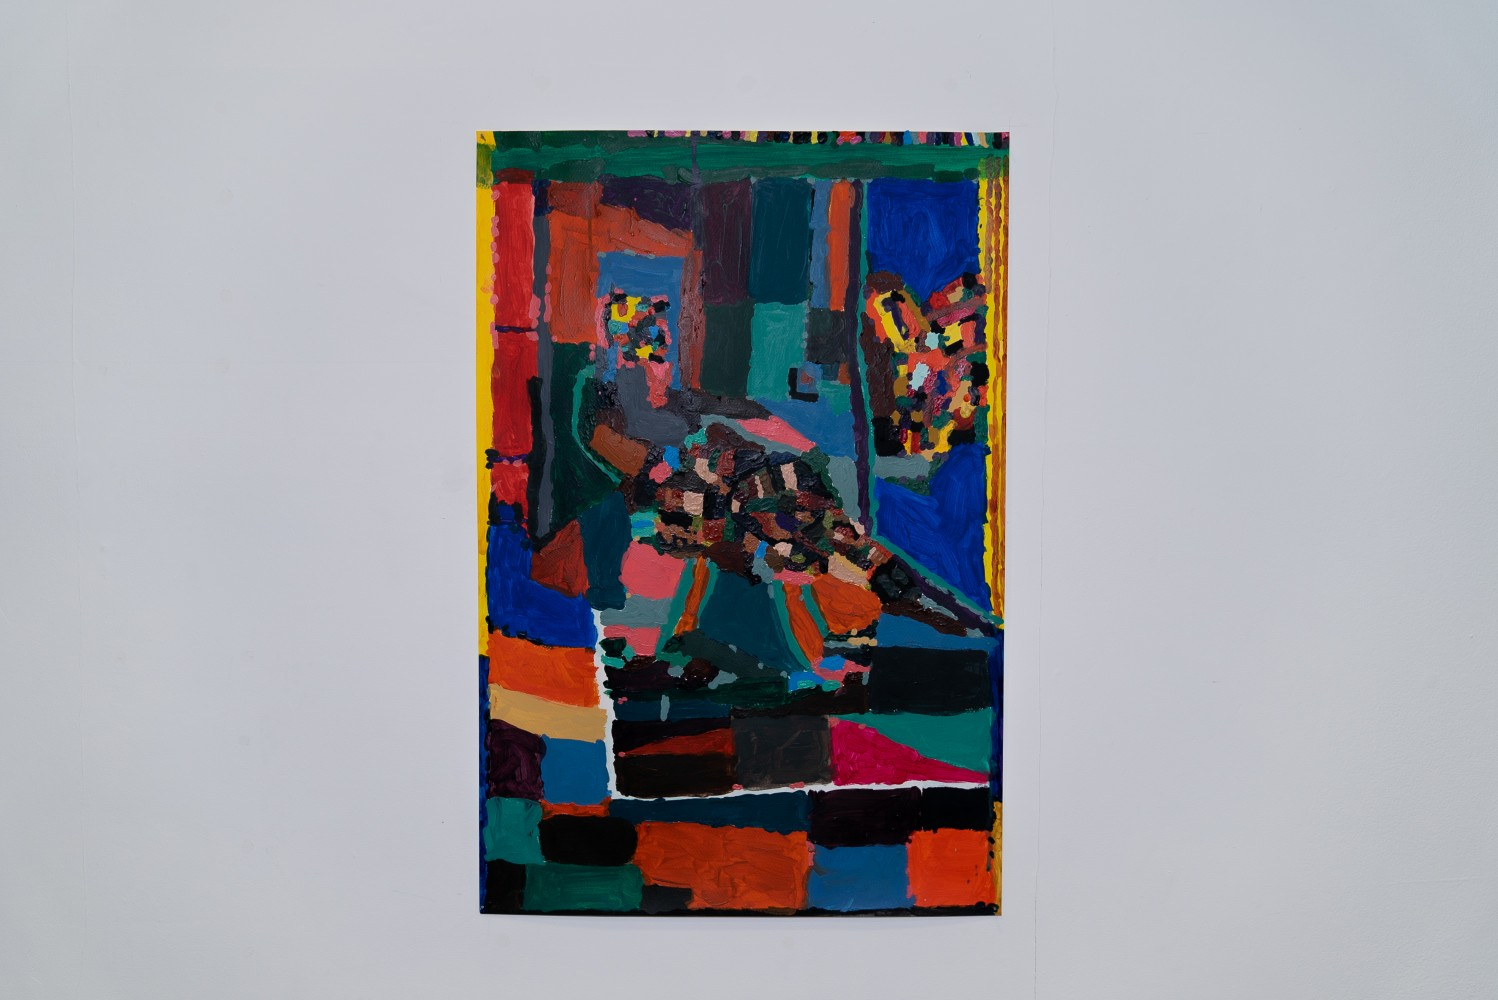 This is an image of a painting on paper centred on a white wall. The painting is made up of very colourful patches of acrylic paint that are part abstract and part form a figure seated almost in profile in an interior space. The colours blue, red, black and green are prominent. The left and right hand side of the painting are edged in yellow.